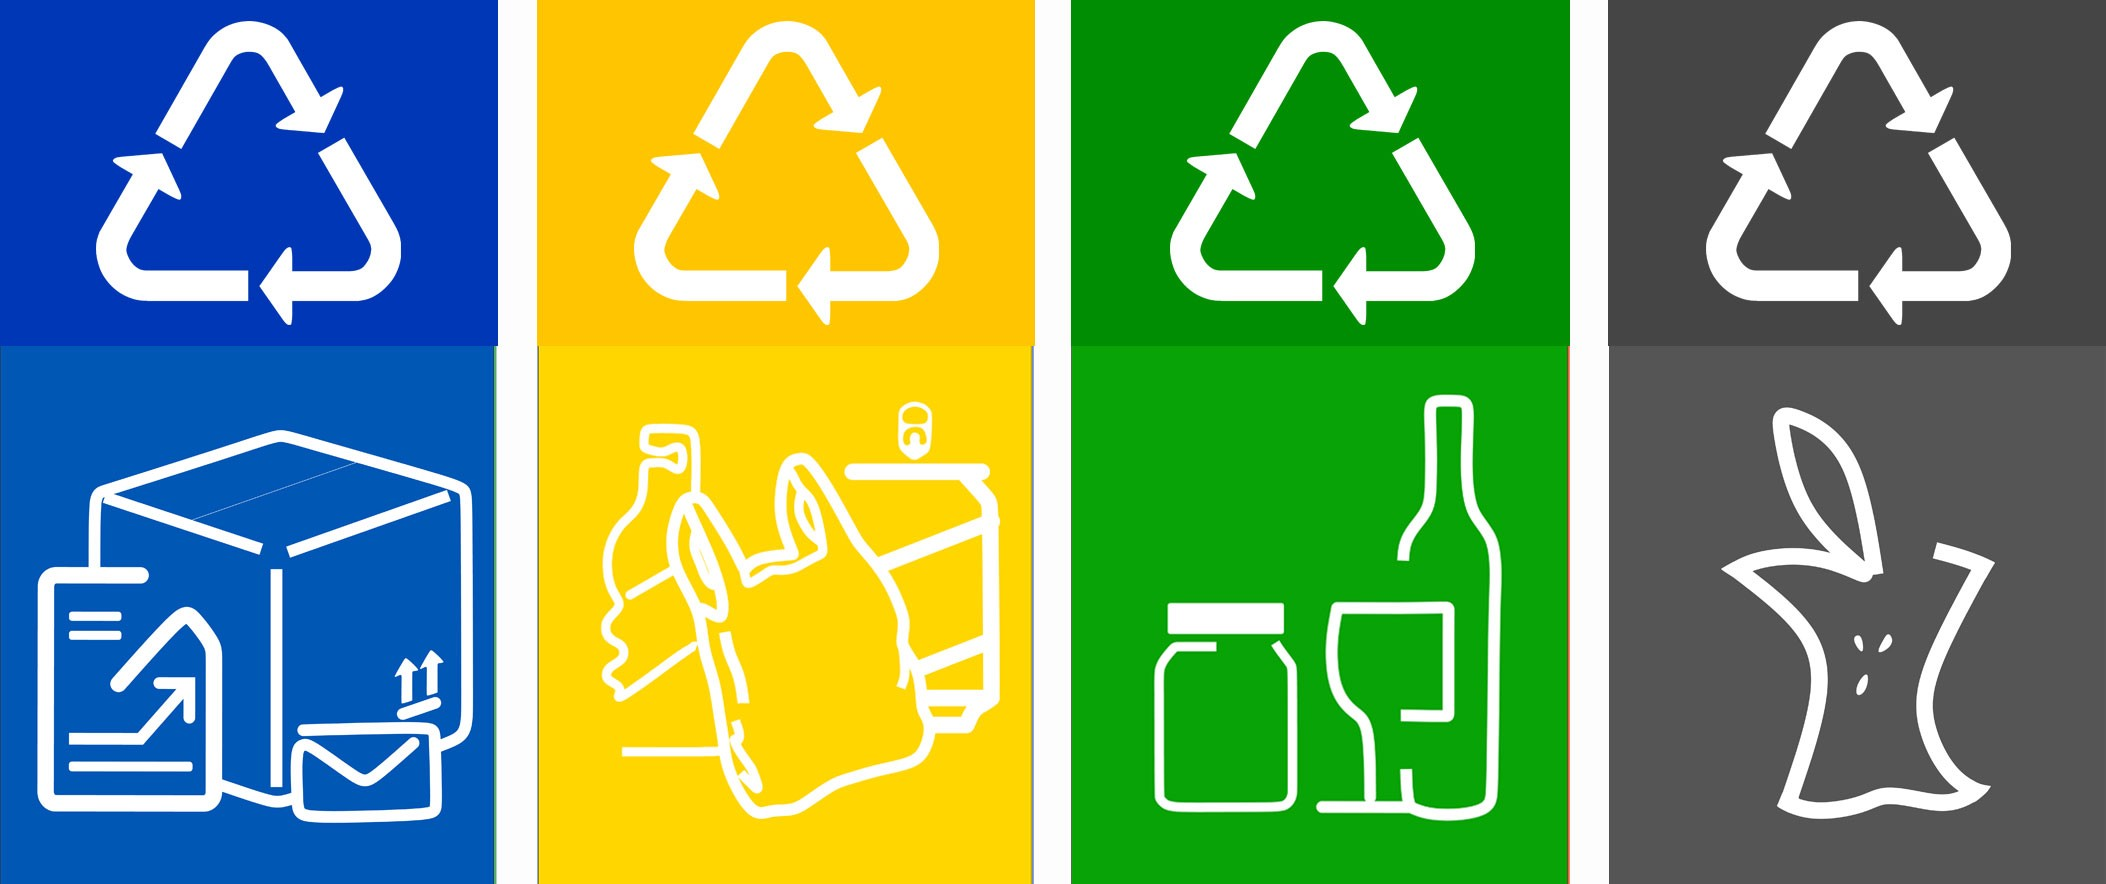 photograph about Printable Recycling Sign called Absolutely free printable recycling labels for packing containers - Razvan D. Toma